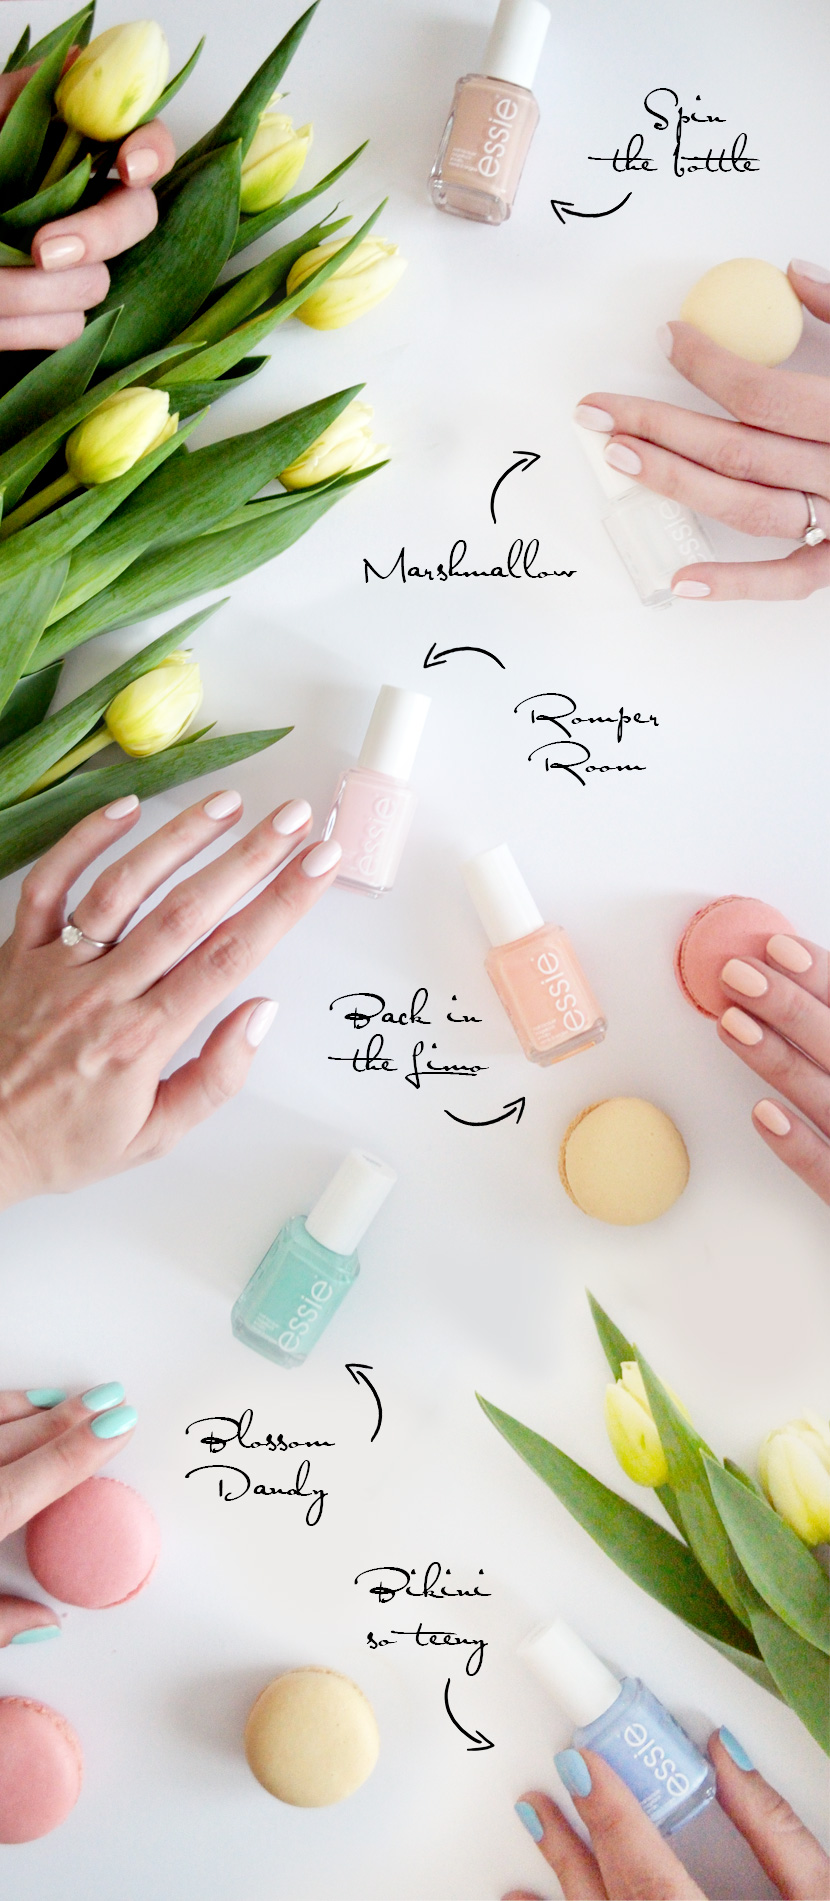 Spring-Candy-Essie_Favourites_Blog_Belle-Melange_Marshmallow_Spin-the-bottle_Blossom-Dandy_Bikini-so-teeny_Back-in-the-Limo_Romper-Room